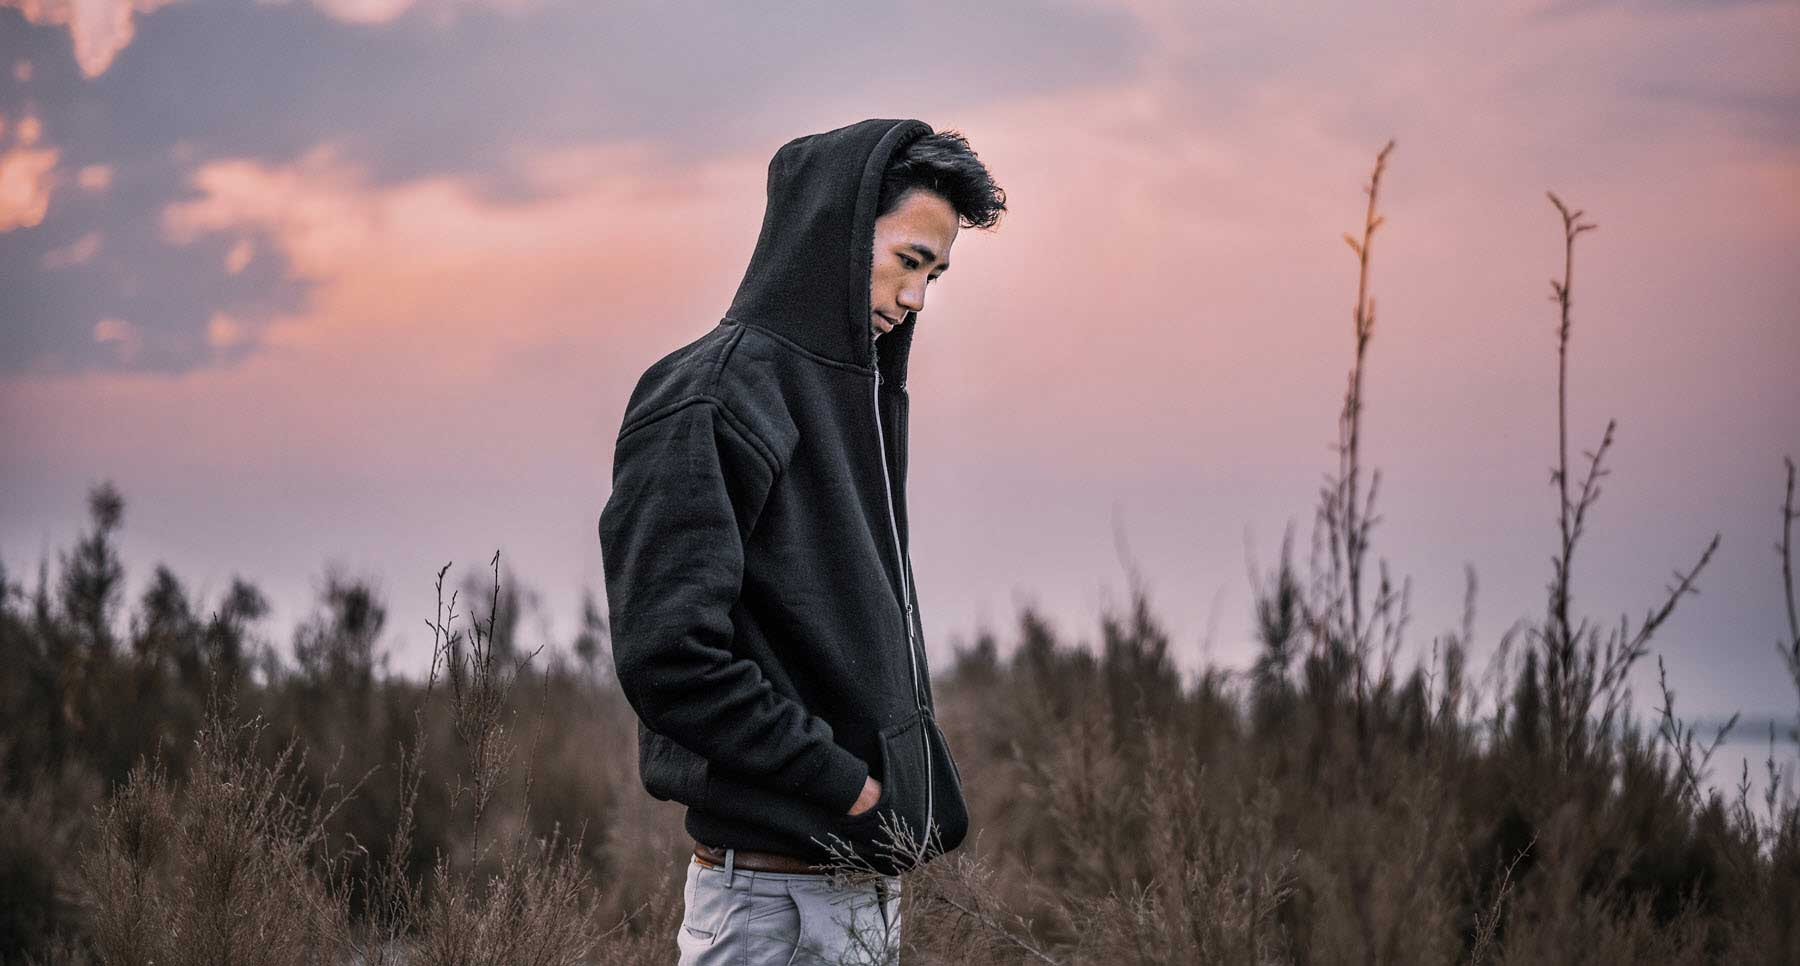 guy-in-a-hoodie-walking-outsied-and-sad-thehopeline-is-grief-wrong-unhealthy-grieving-after-loss